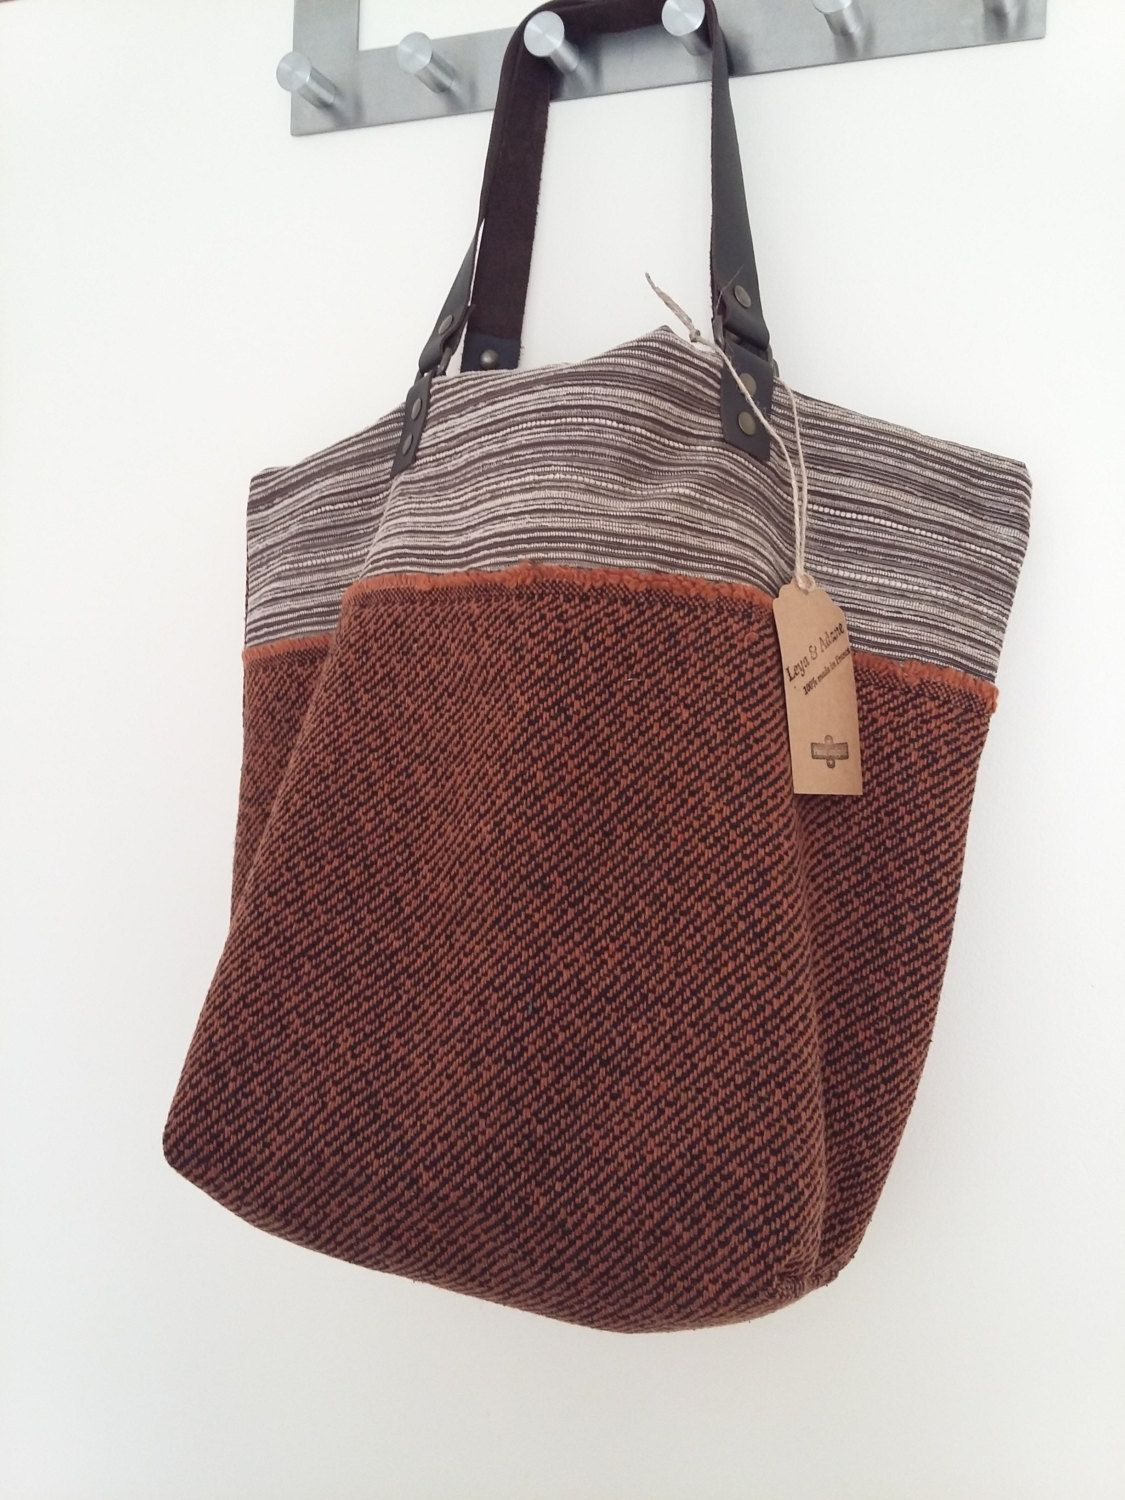 Sac Cabas Armelle Sac Reversible Grand Sac Sac Fourre Tout Sac A Main Sac A Offrir Tote Bag Hobo Bag Anses En Cui Sewing Leather Tote Bag Leather Handle